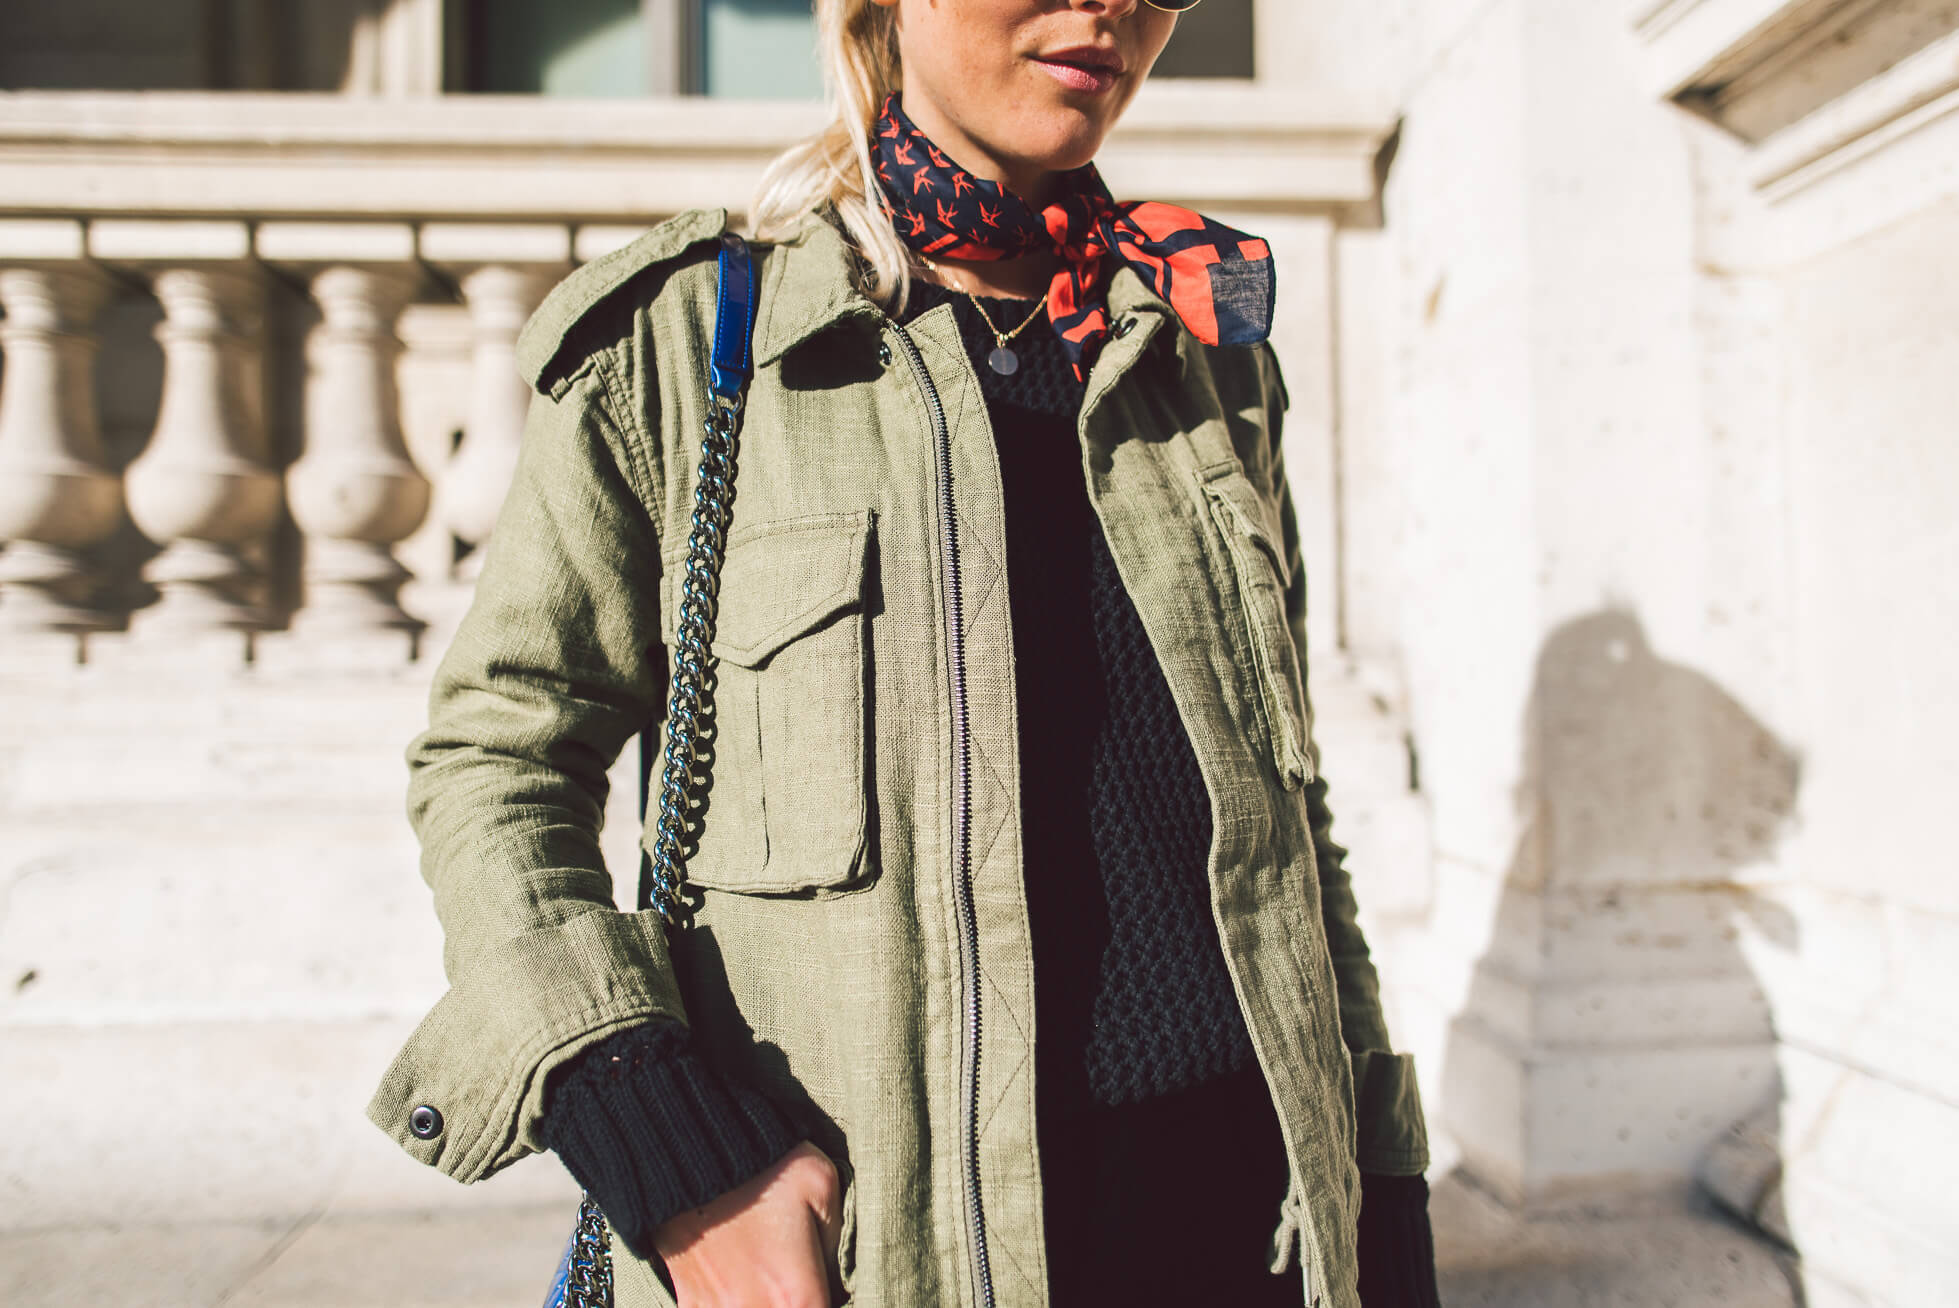 janni-deler-army-jacket-ginaDSC_1871